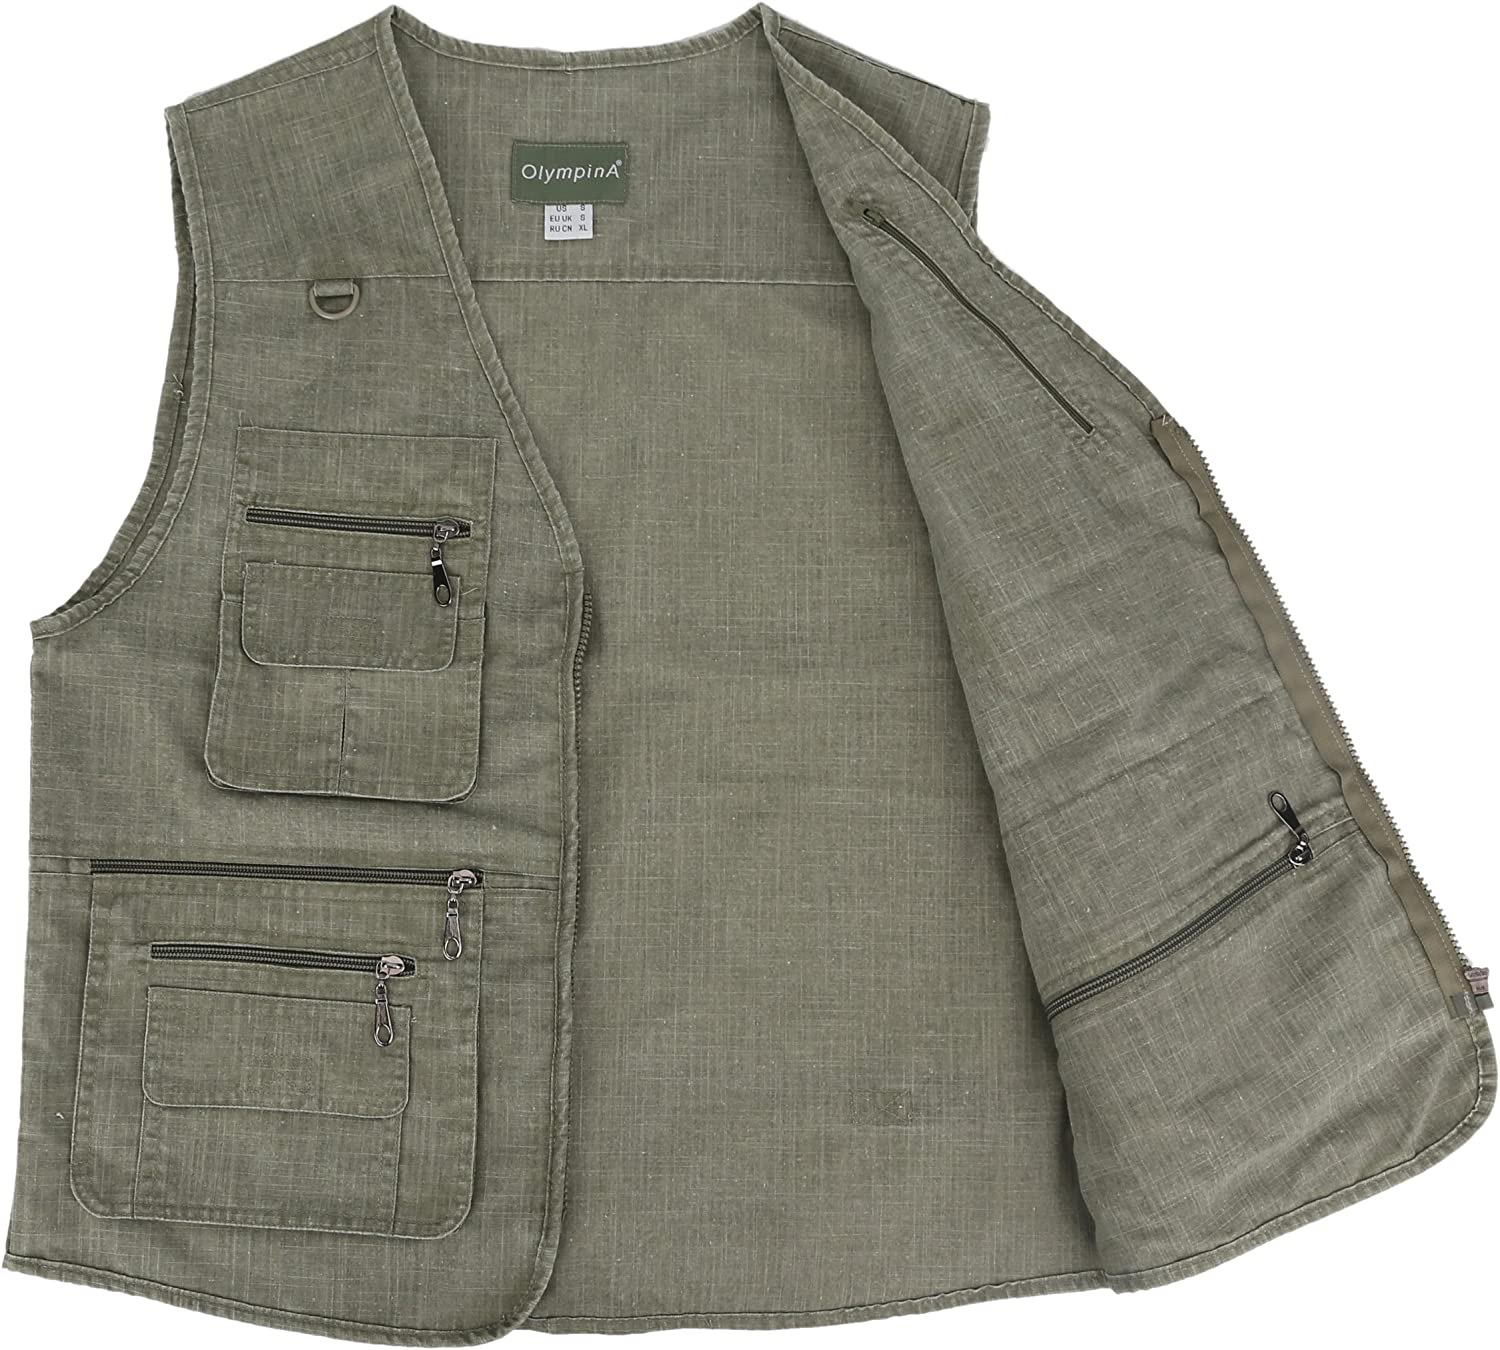 LUSI MADAM Mens Linen Outdoors Lightweight Travel Vests with Pockets